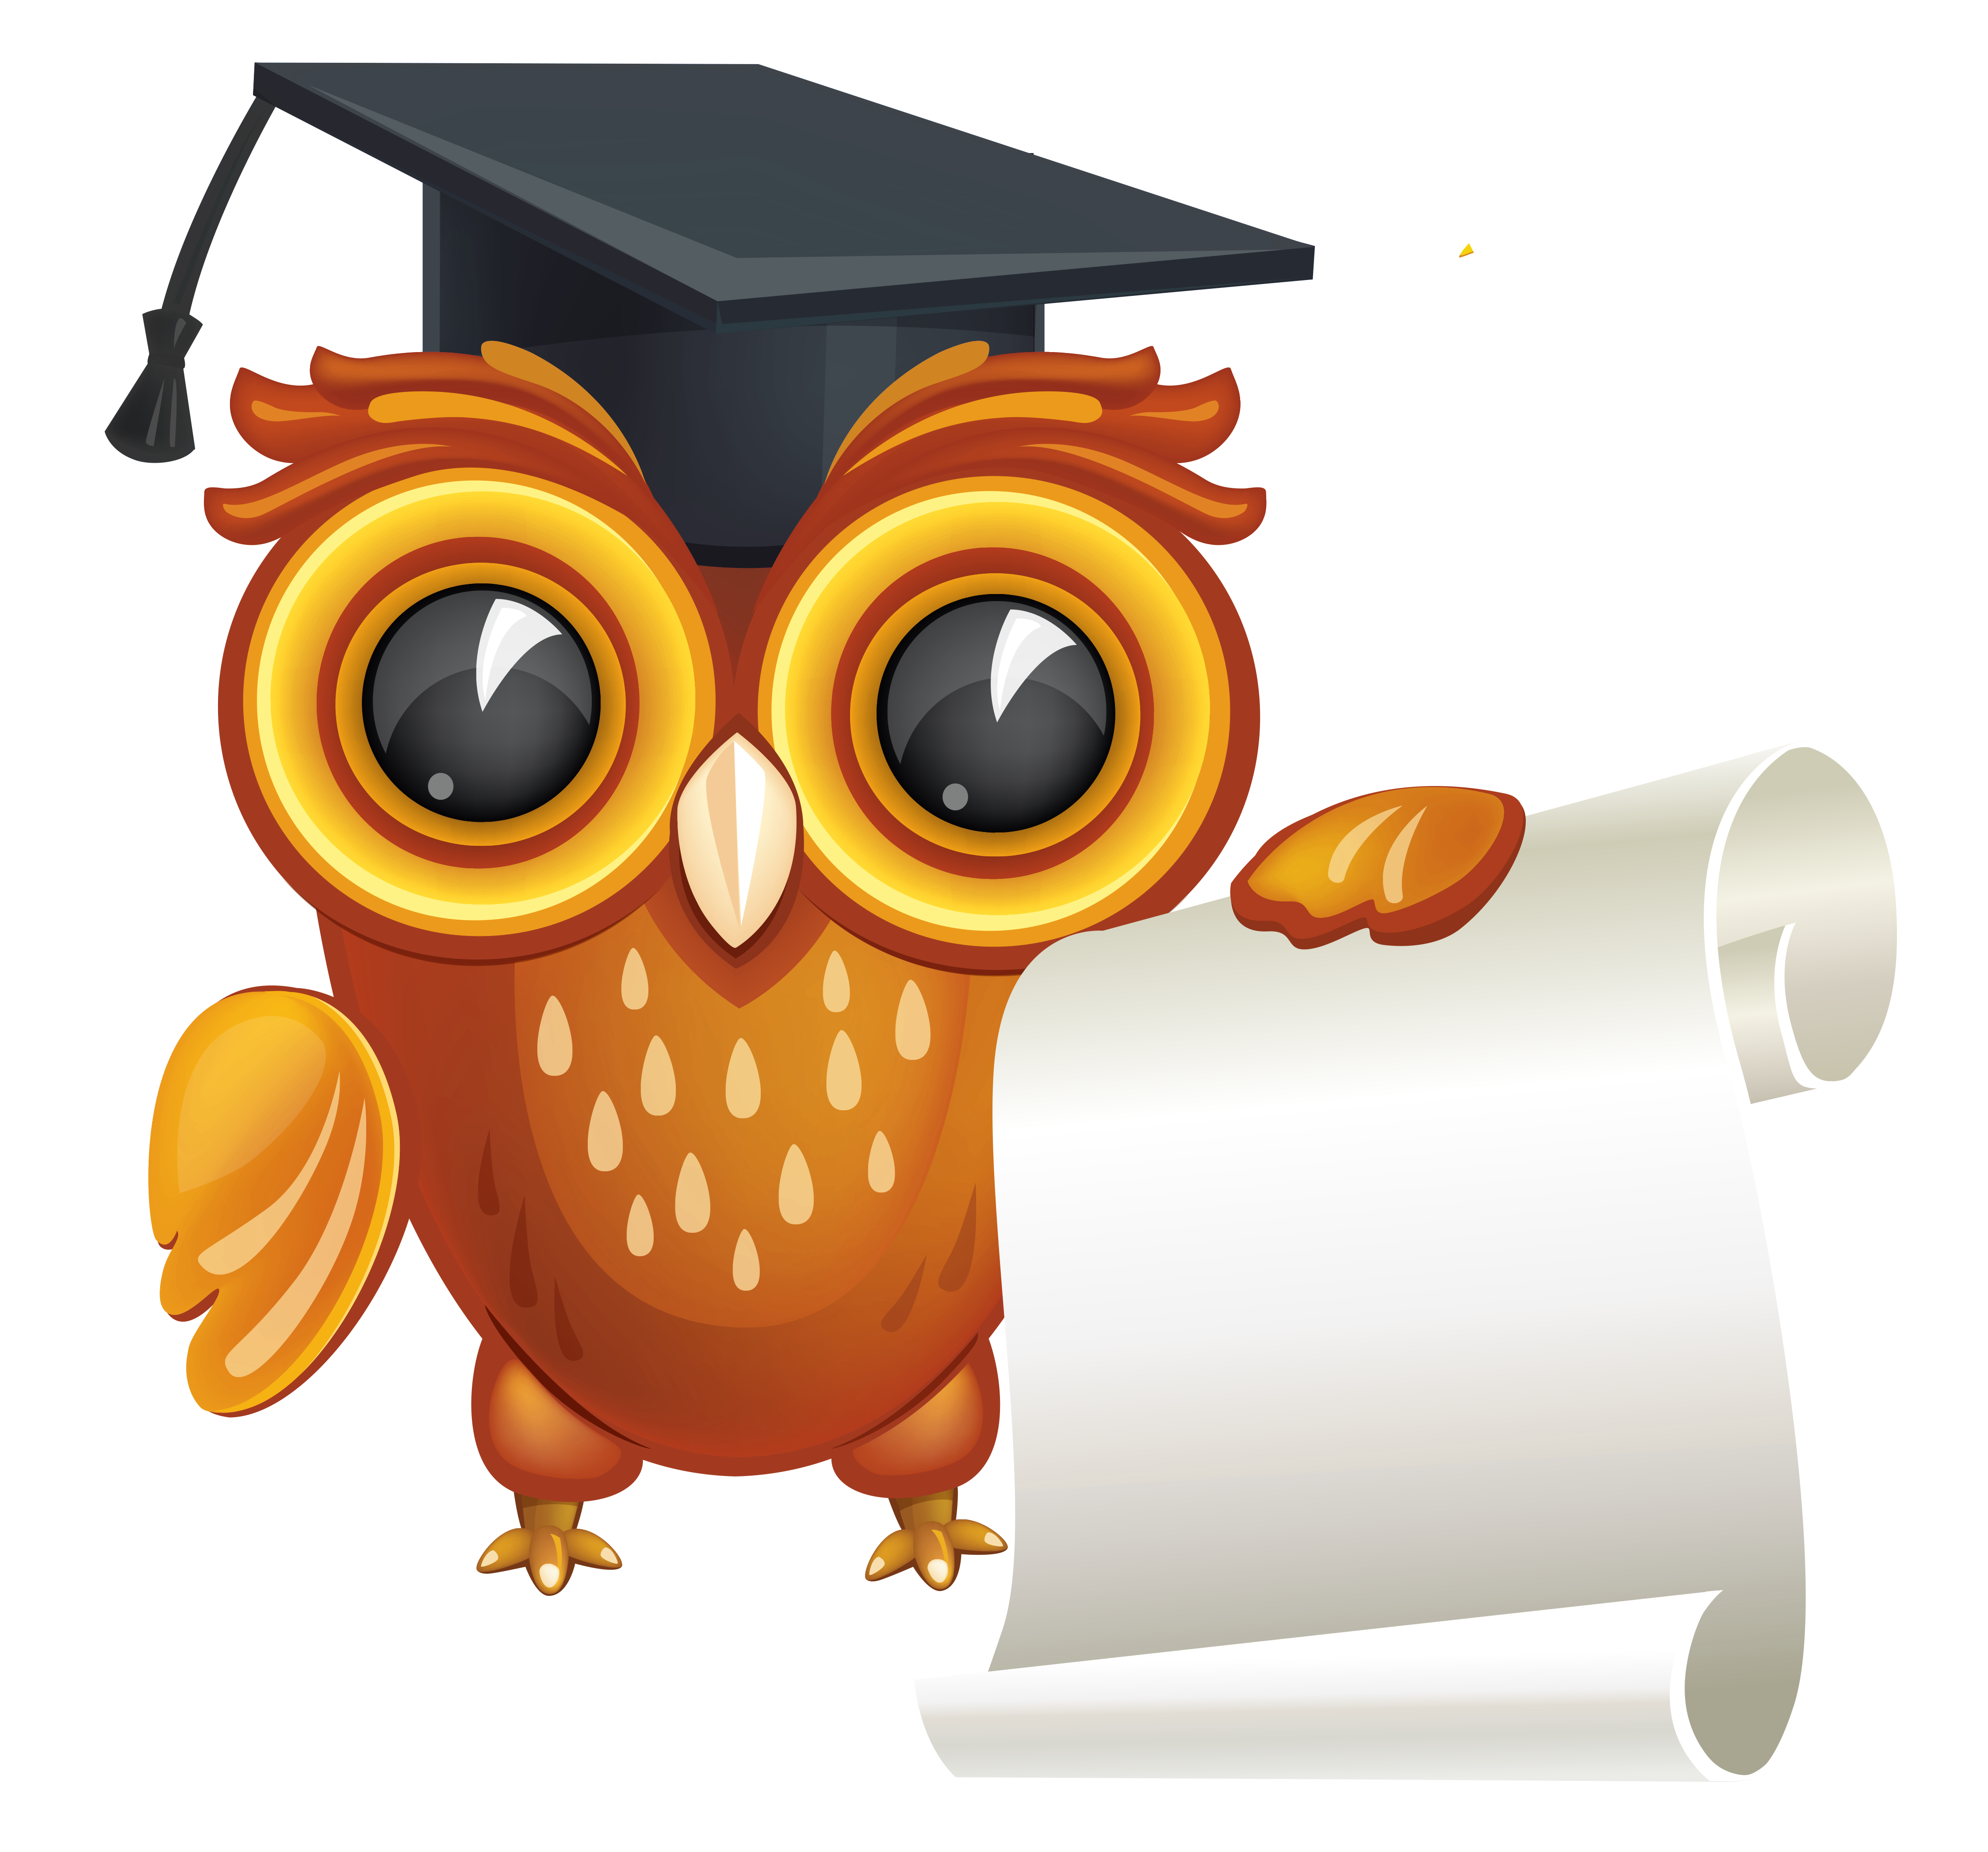 Diploma clipart transparent background. Owl with png image